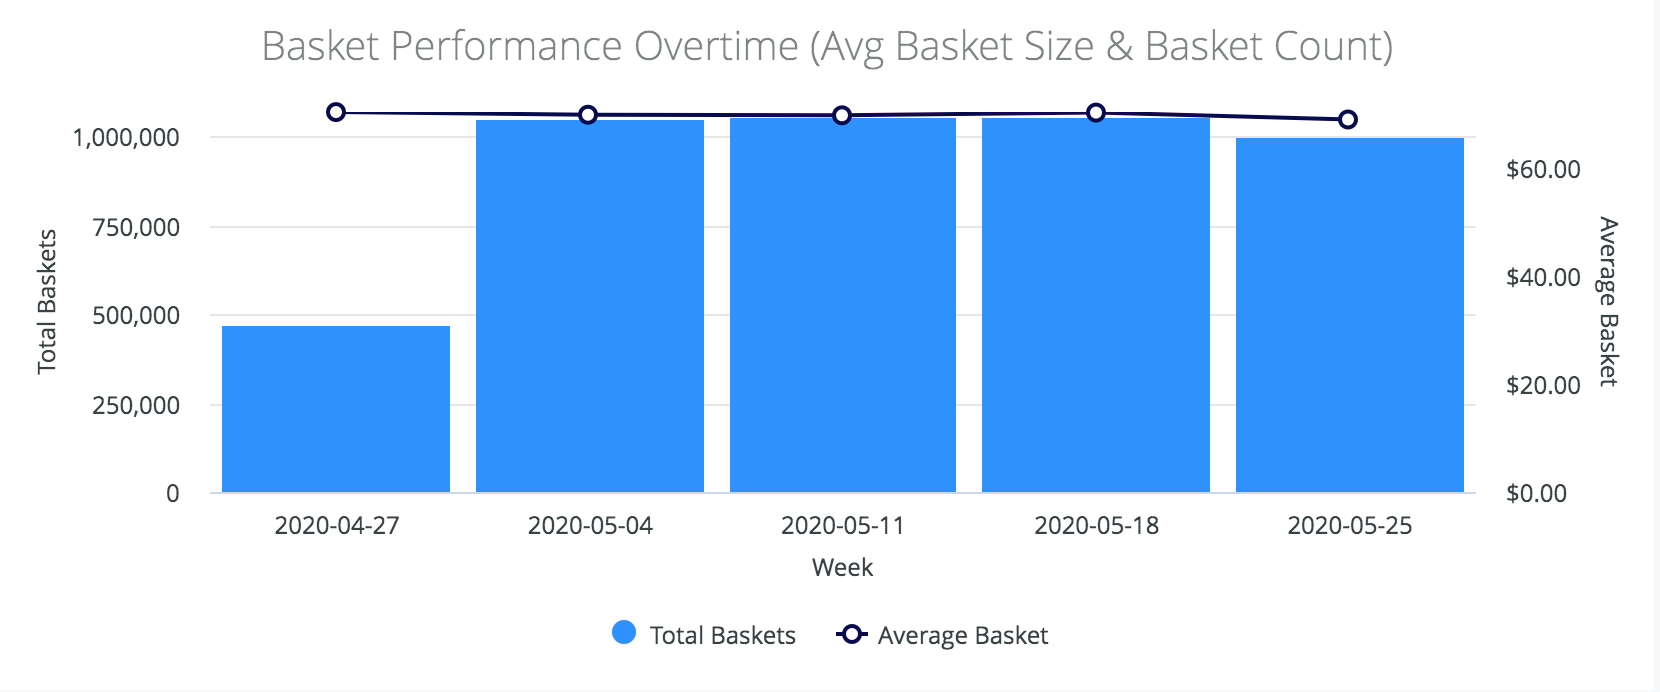 cannabis-basket-performance-overtime-average-basket-size-basket-count